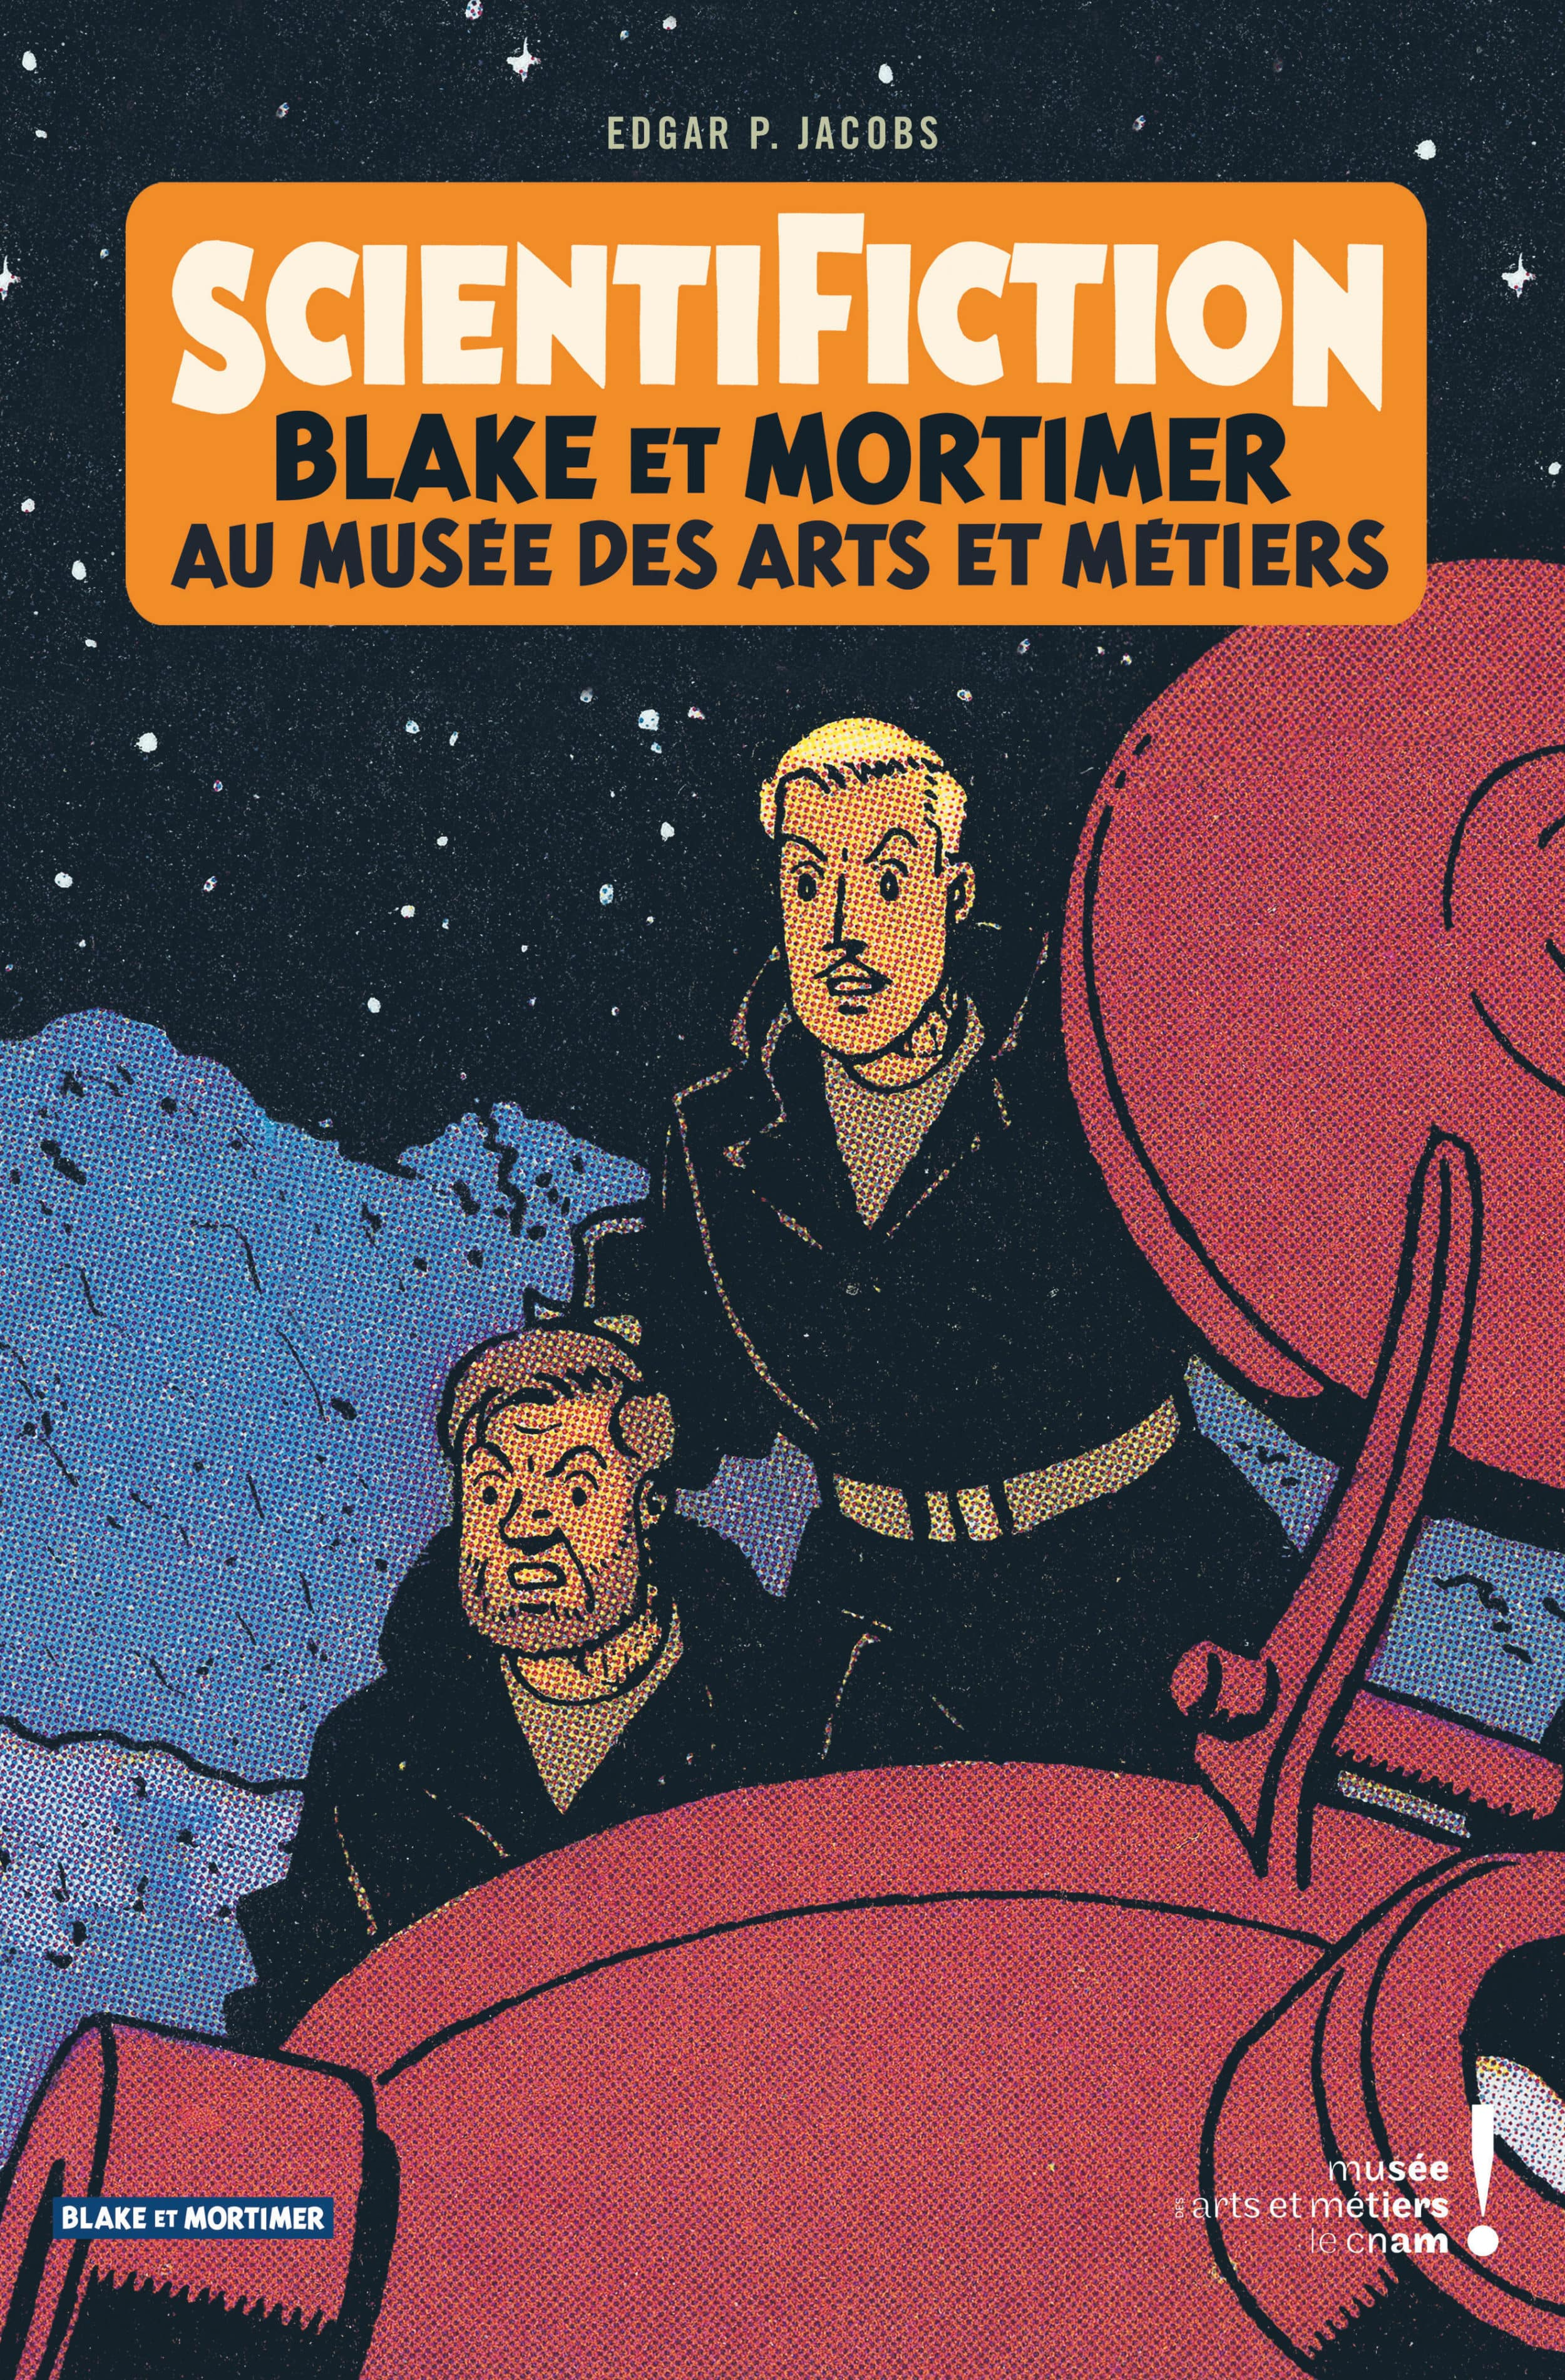 Scientifiction avec Jacobs, Blake et Mortimer, le catalogue d'une exposition incontournable